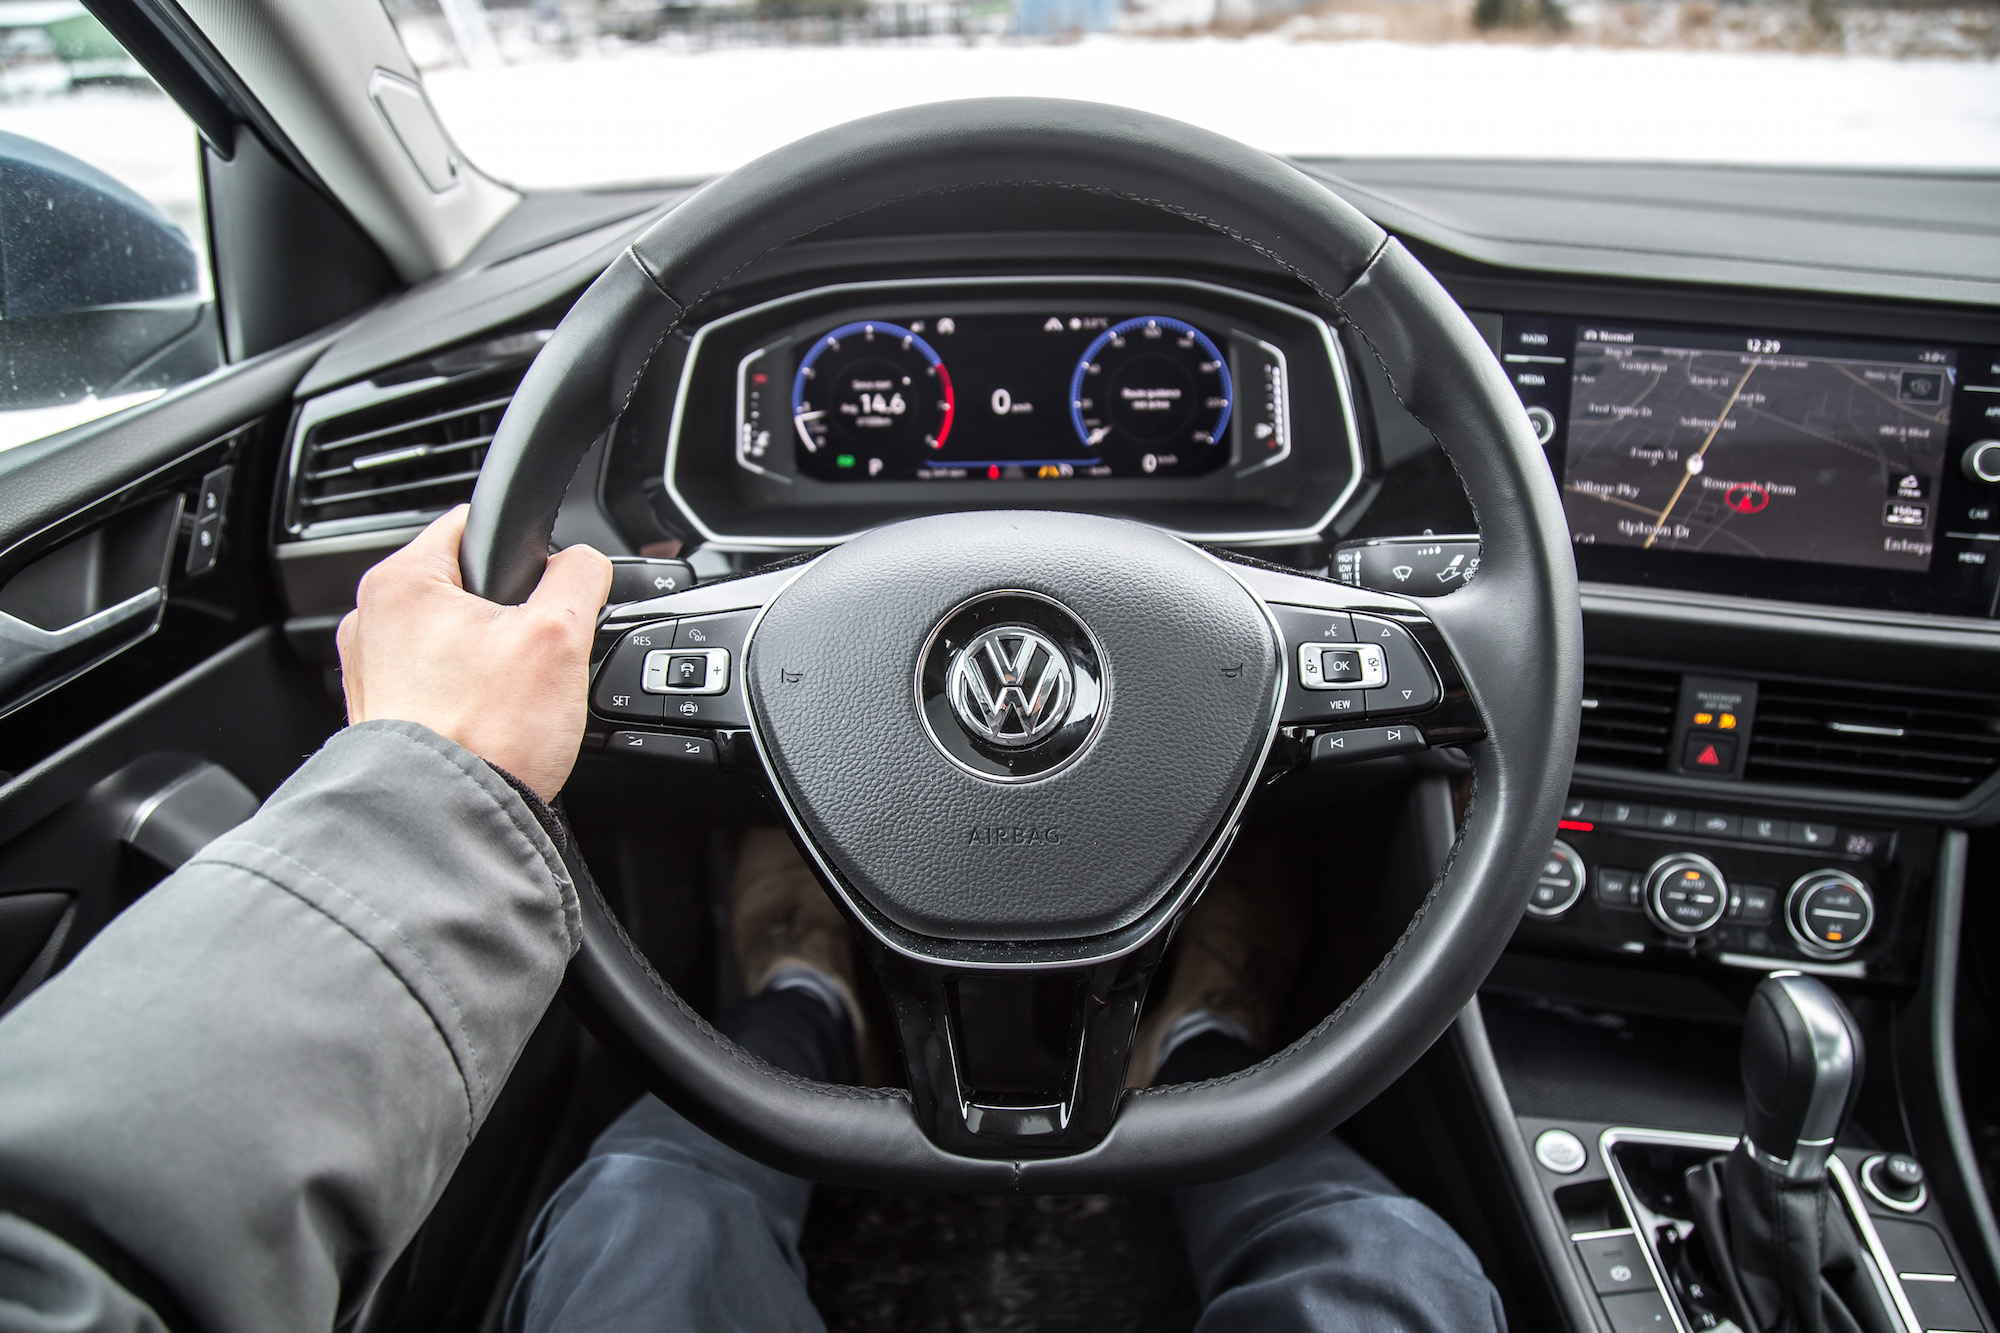 Review 2019 Volkswagen Jetta Execline CAR